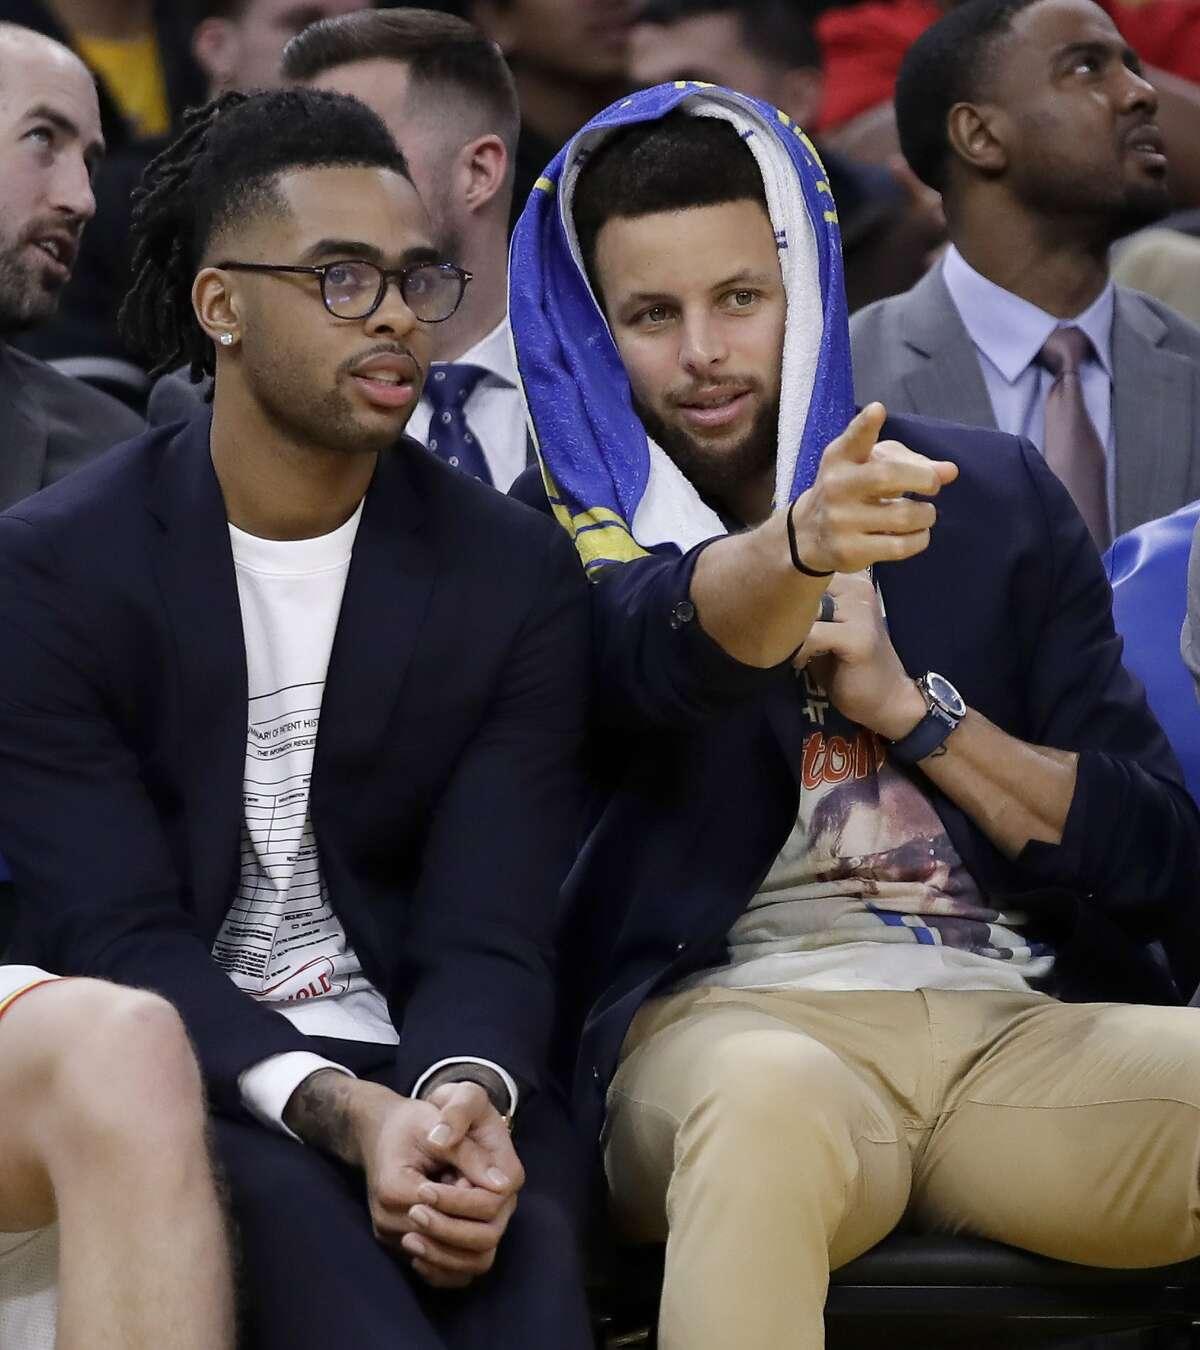 Golden State Warriors' Stephen Curry, right, gestures while speaking to teammate D'Angelo Russell on the bench as they watch during the second half of the team's NBA basketball game against the Milwaukee Bucks in January. The team still wants to see how the two will play together once Curry returns to the court.